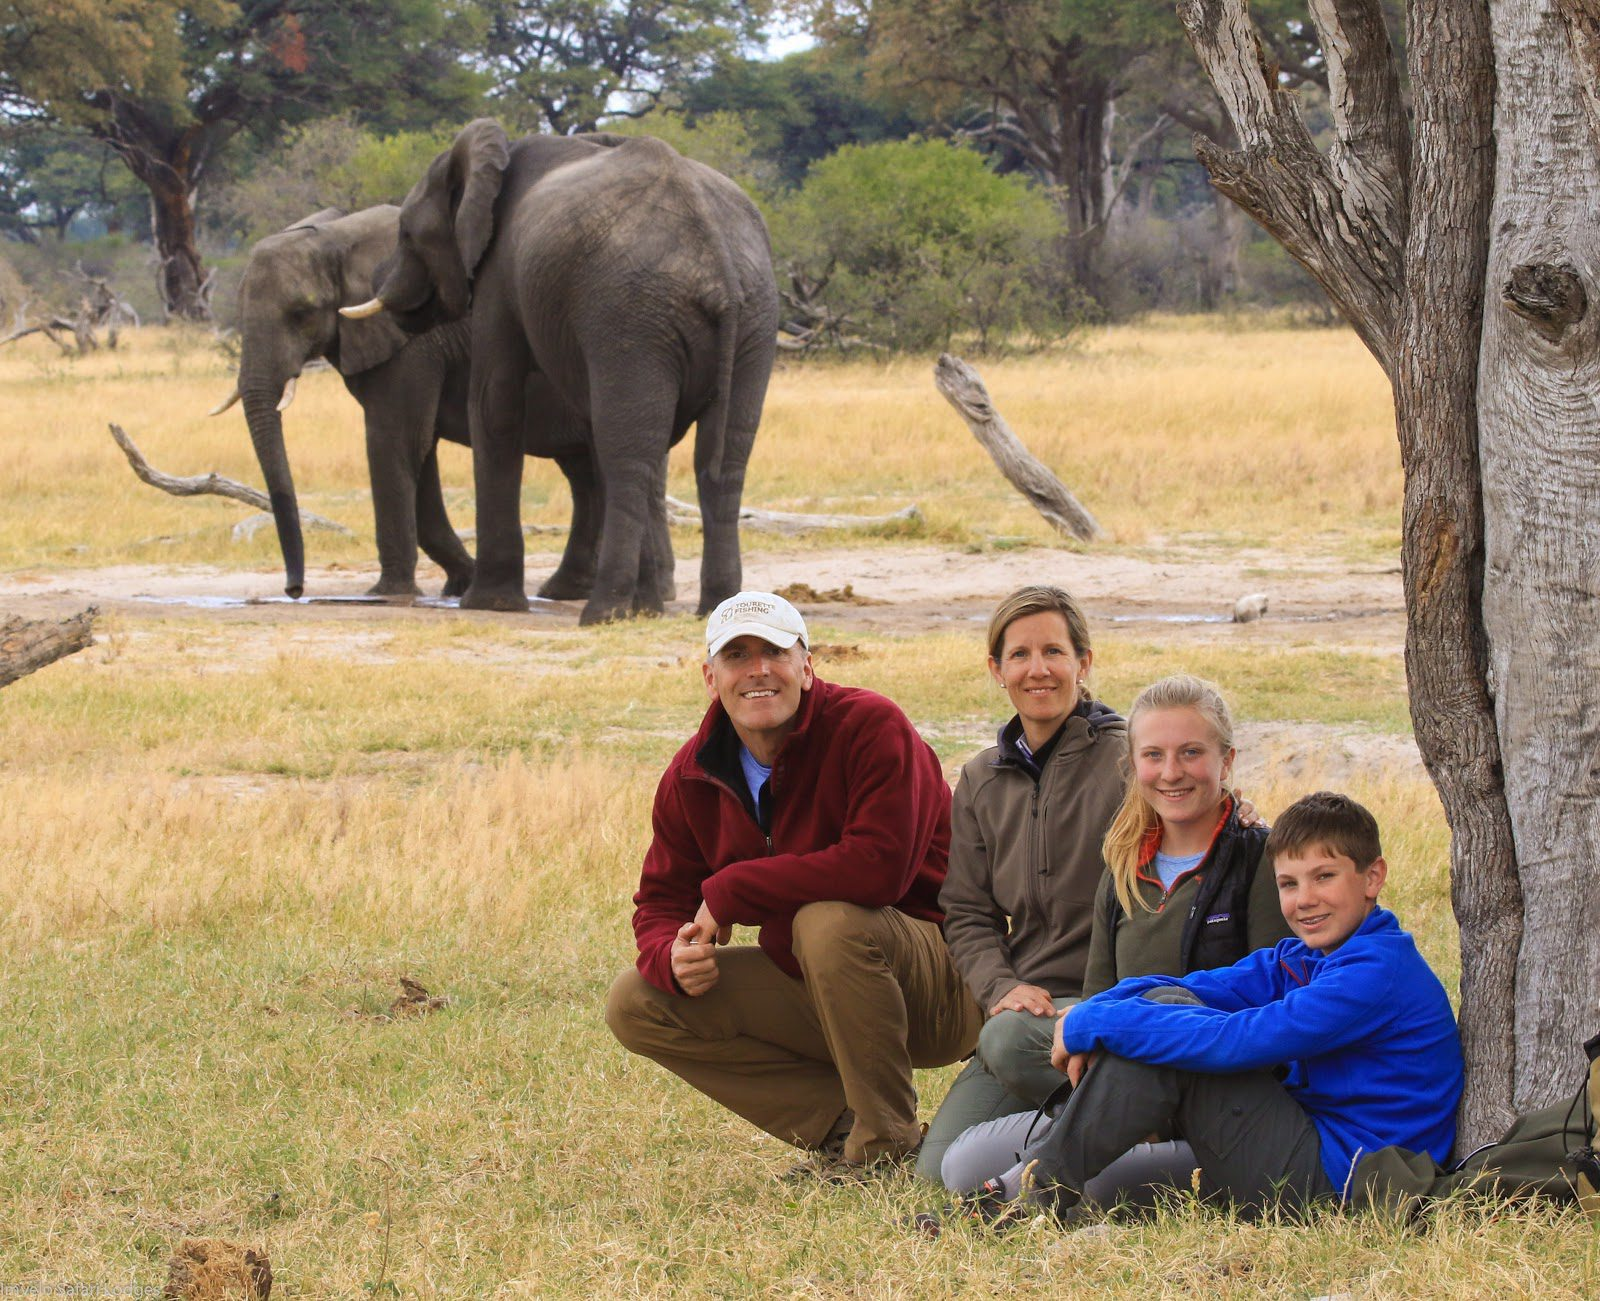 family walking safari poses with elephants